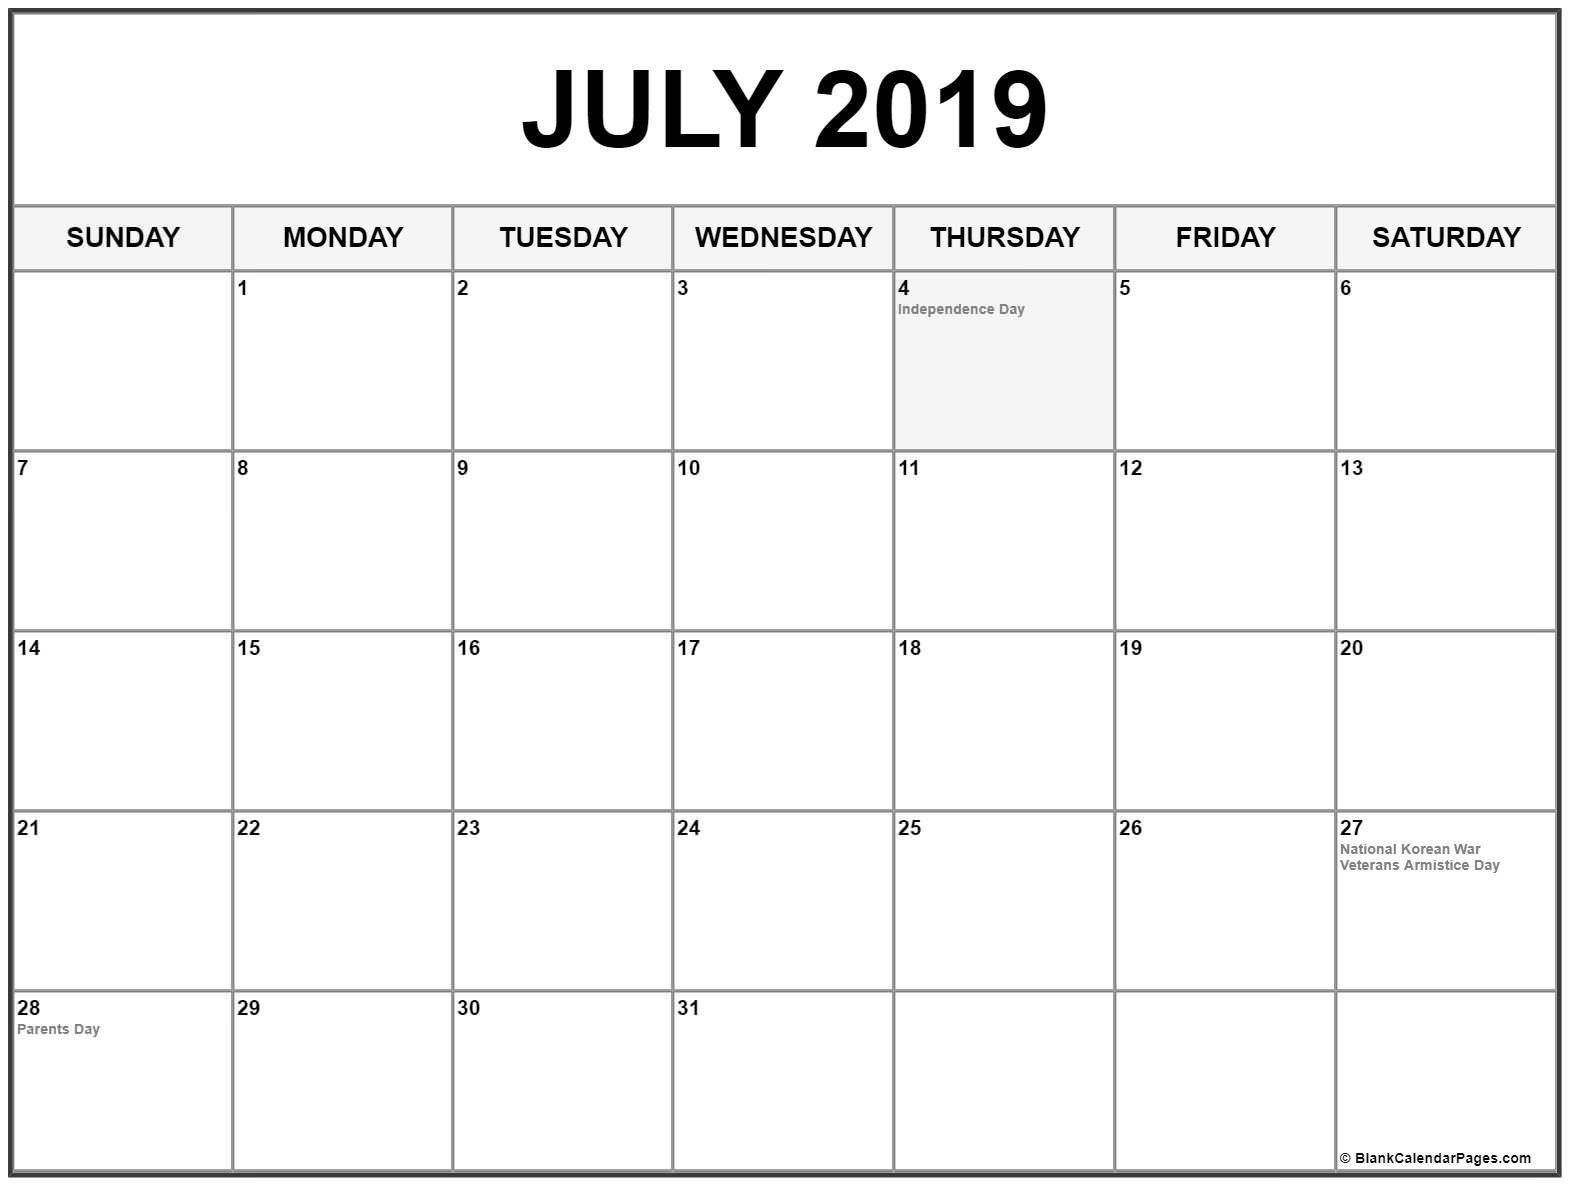 July 2019 Calendar With Holidays #july #july2019 #julycalendar2019 within July 2019 - July 2020 Calendar Printable Free